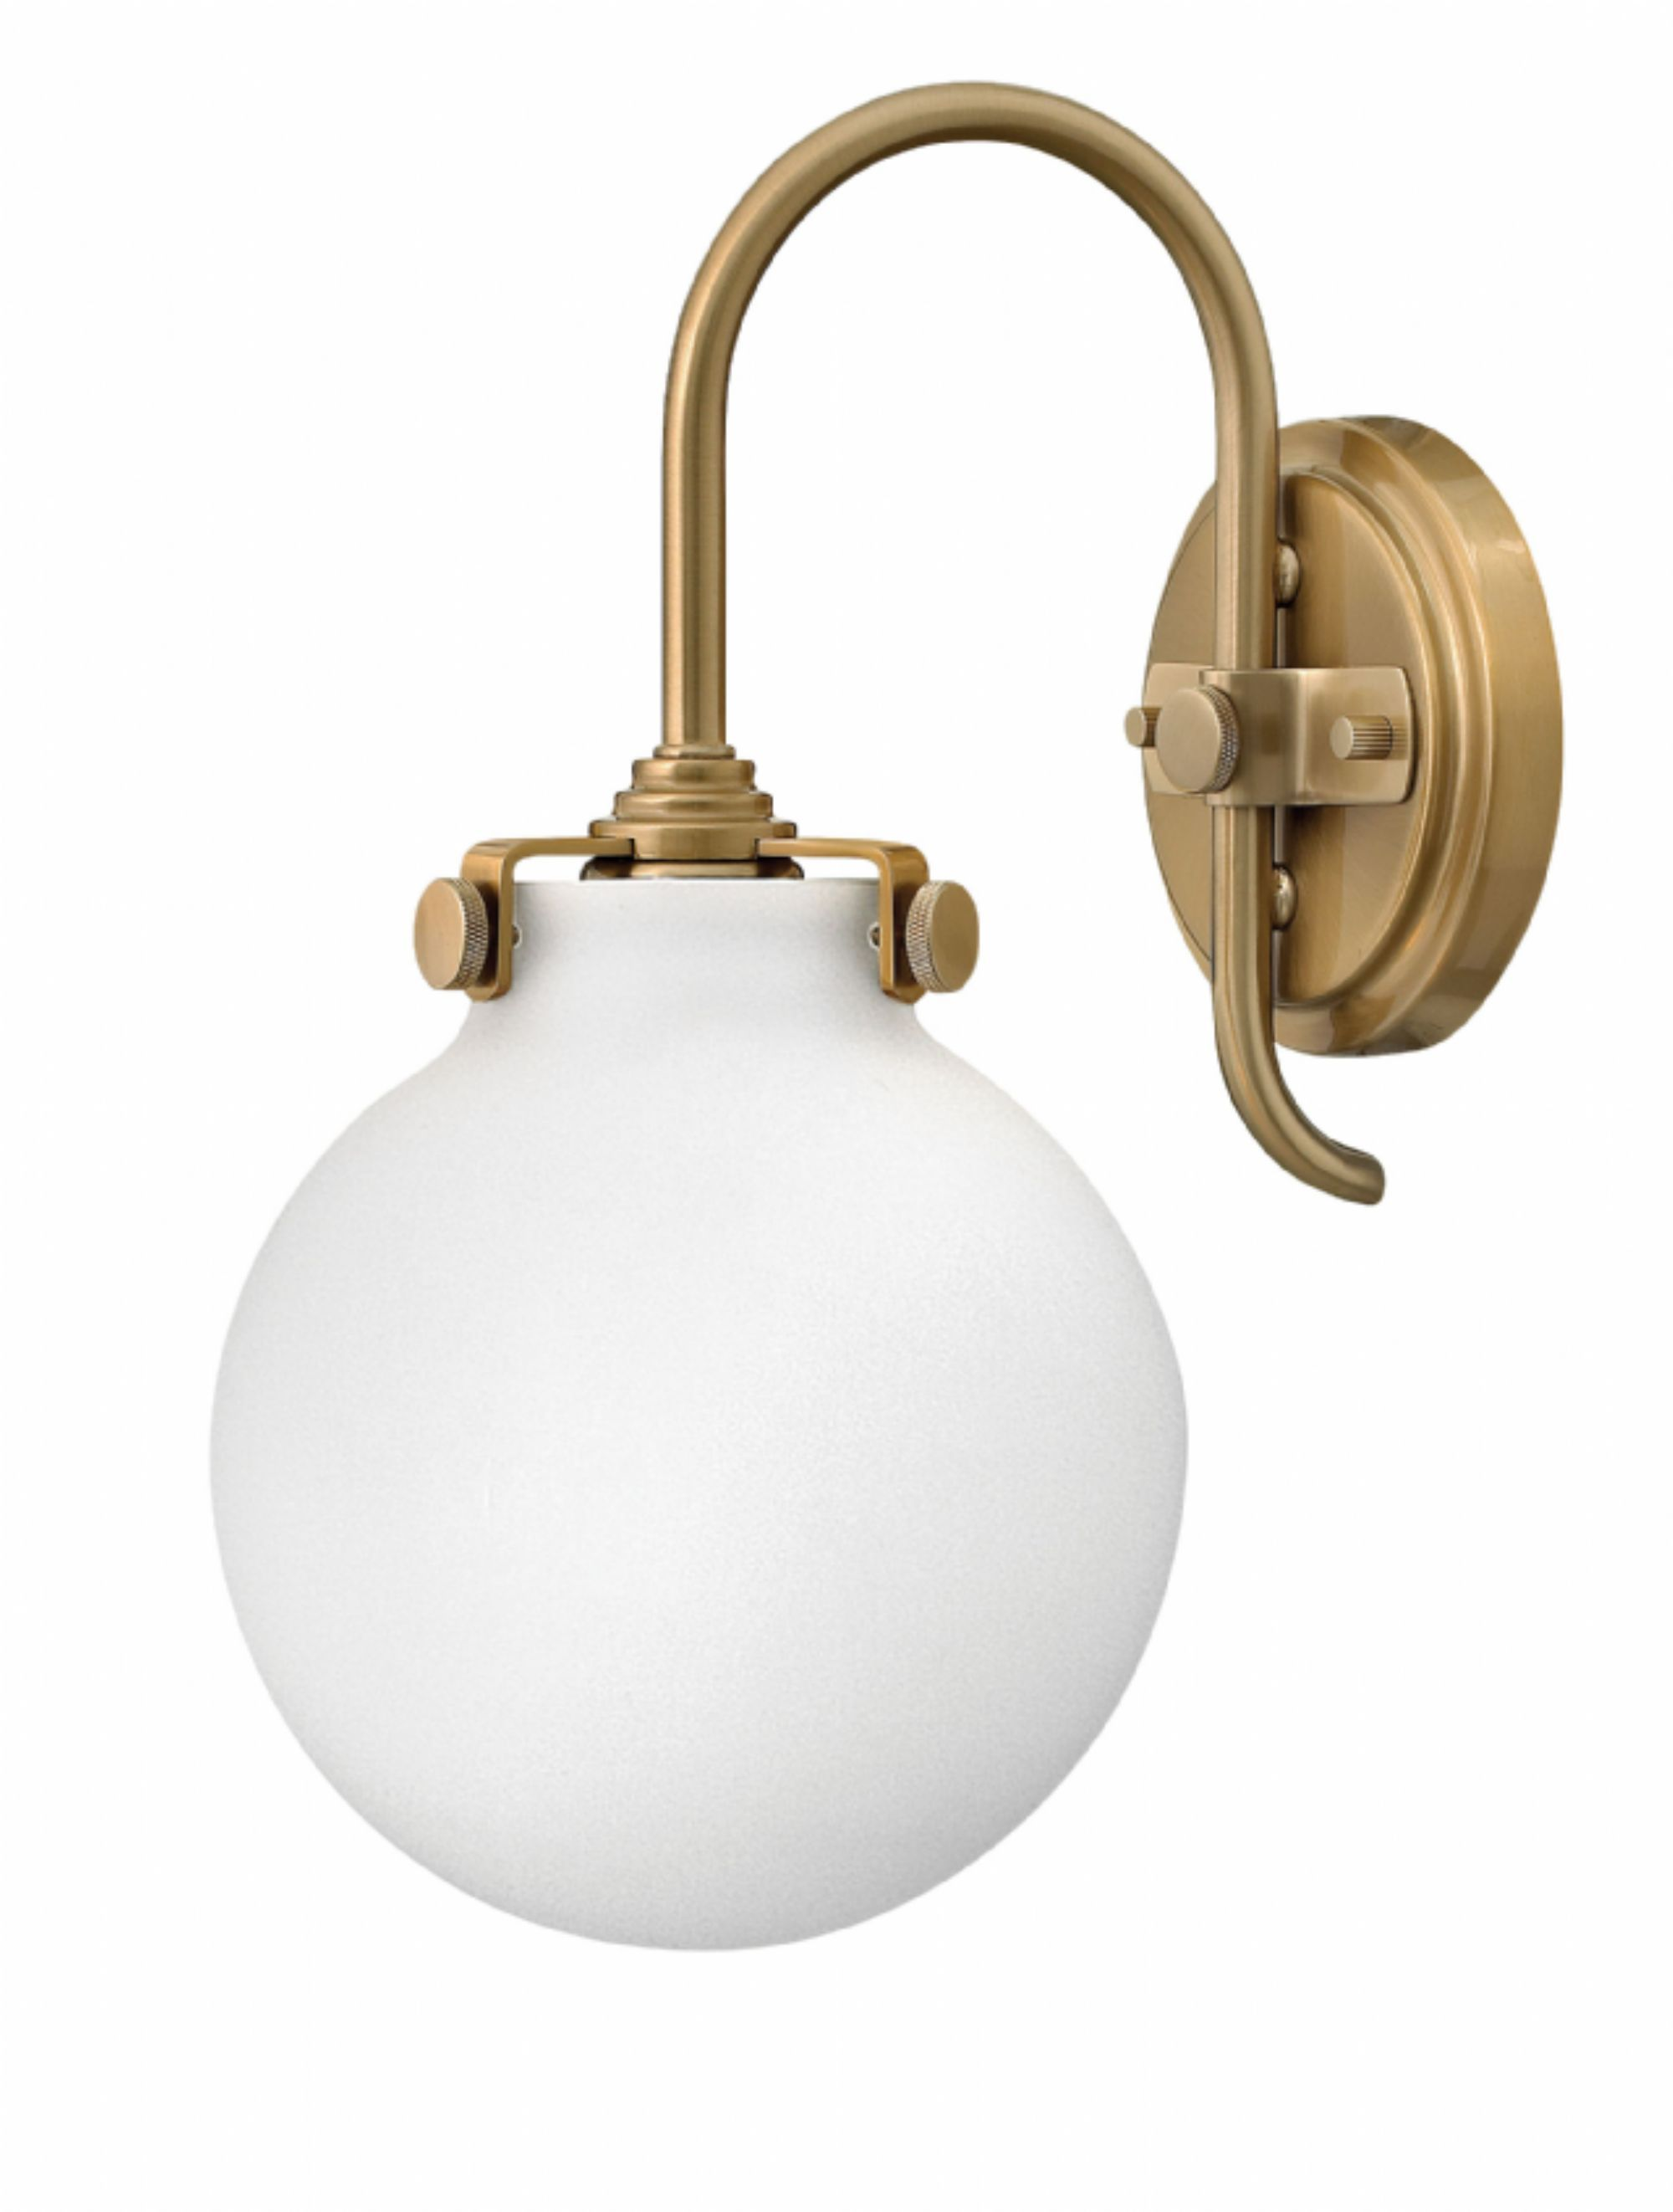 Hinkley Lighting Congress 3173bc Living Room Indoor Wall Sconces Sconces Wall Sconces